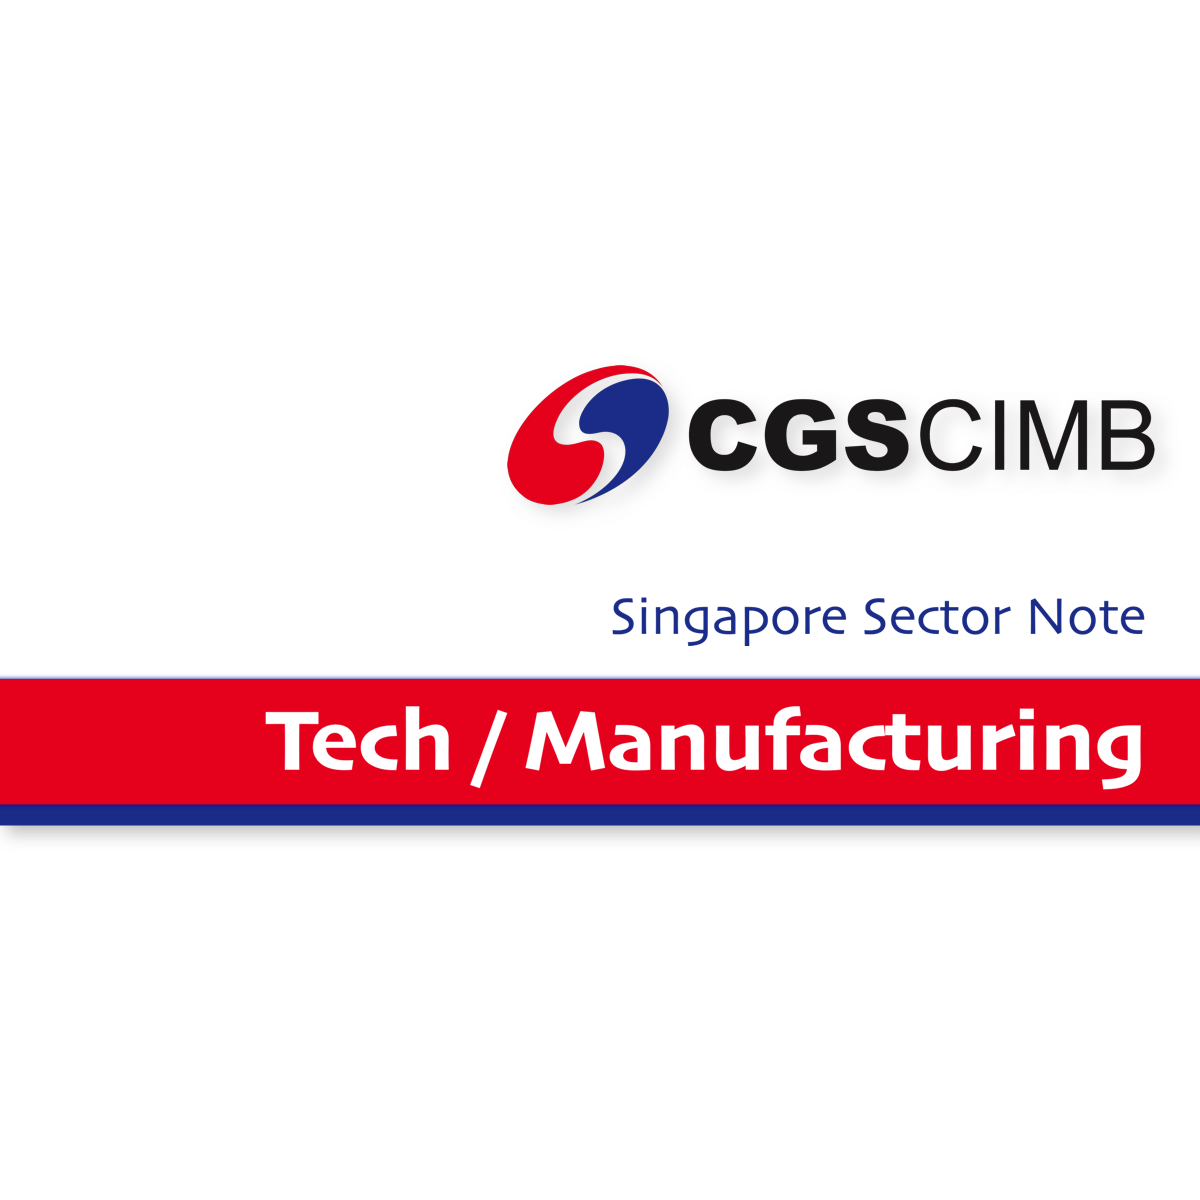 Tech Manufacturing Services - CGS-CIMB Research | SGinvestors.io